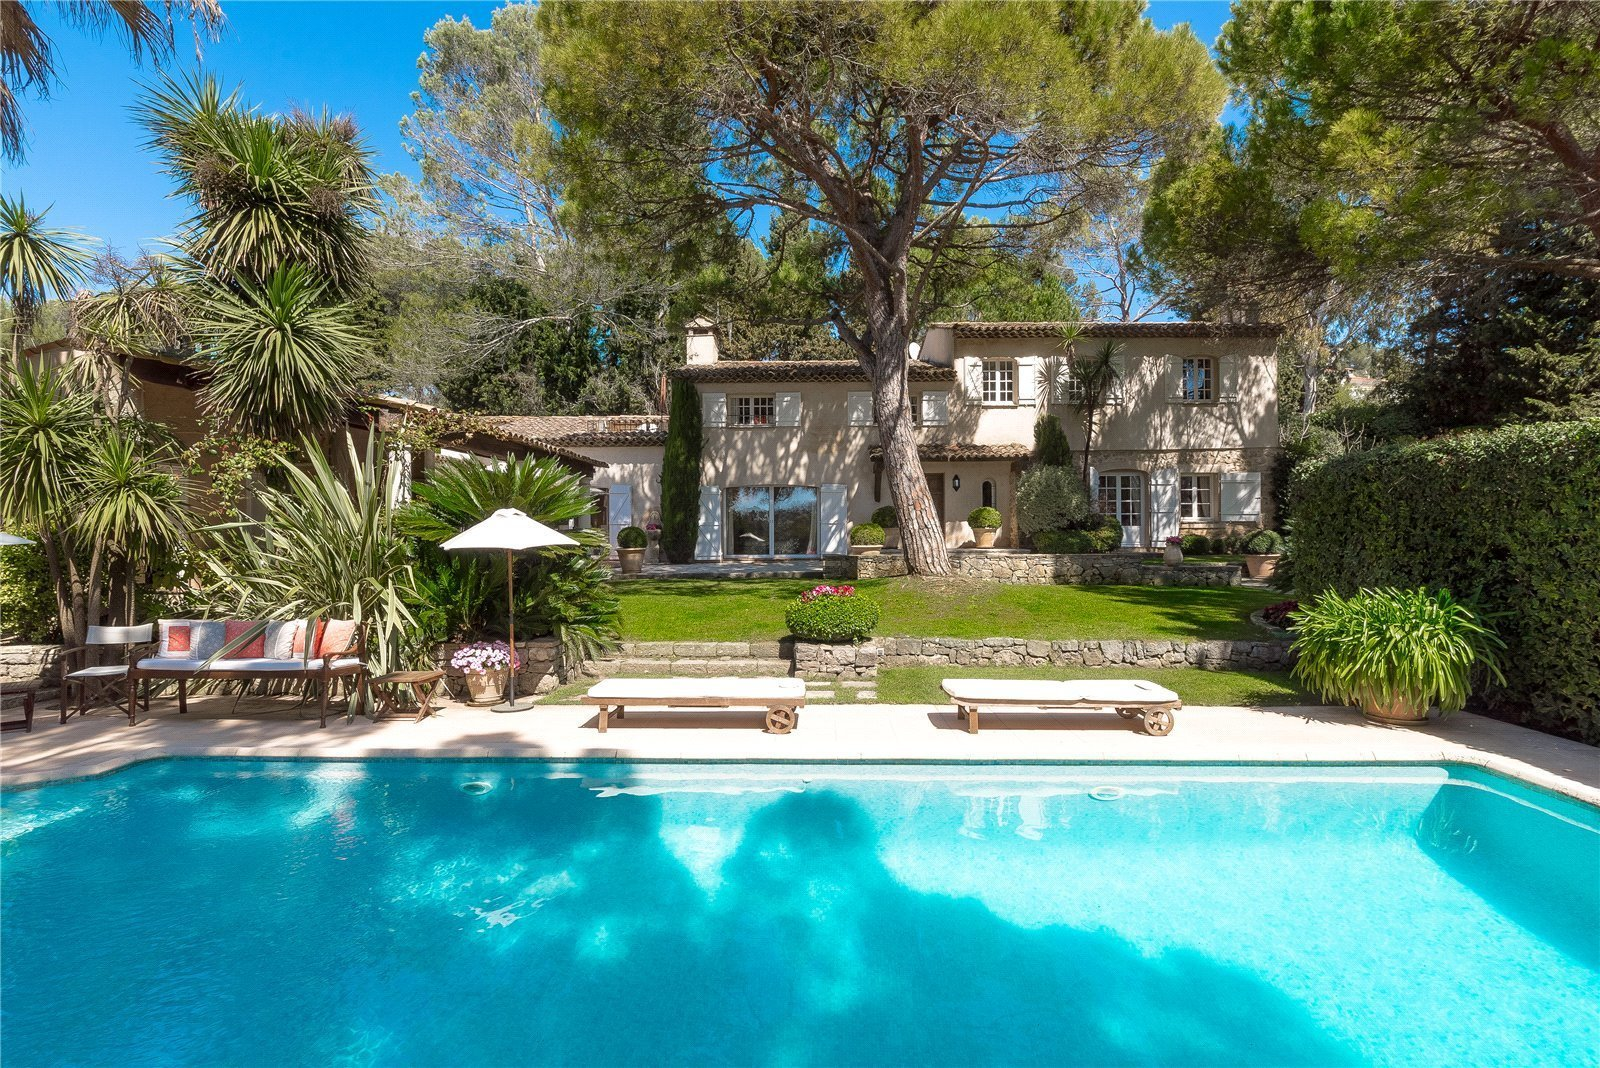 Provençal property in a sought-after area with 6 bedrooms, guest apartment, tennis court and pool.